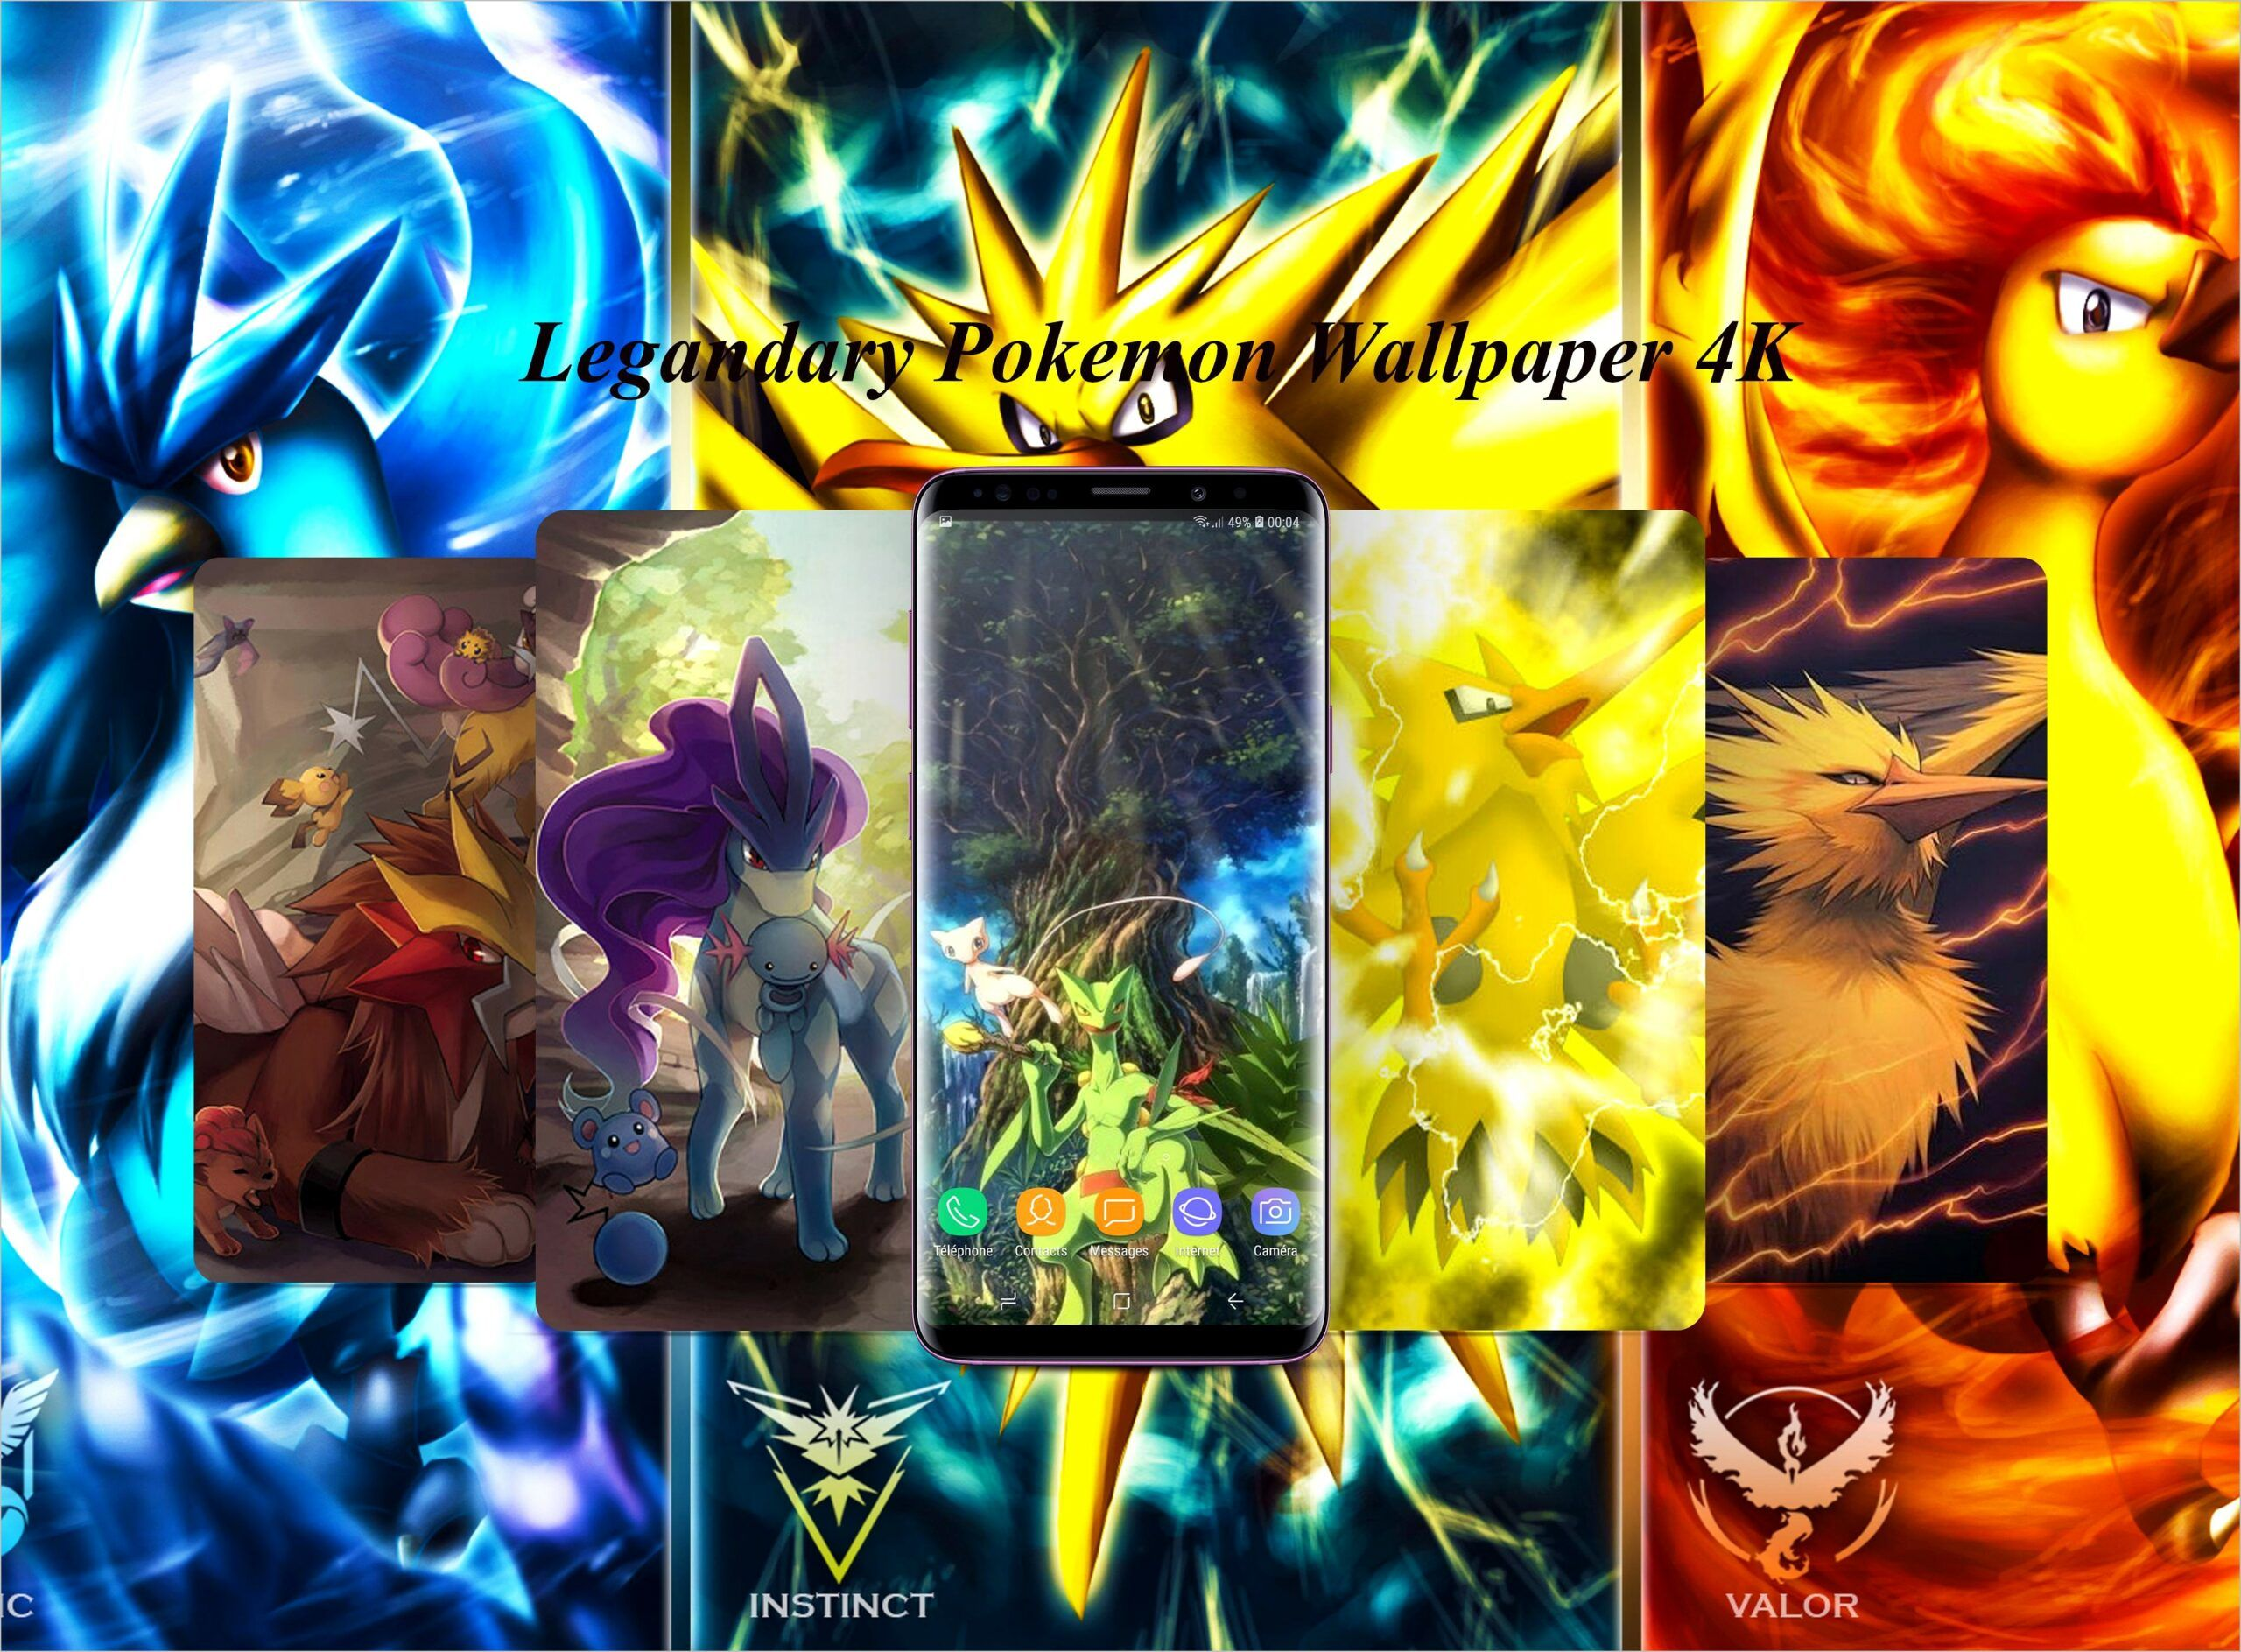 Pokemon 4k Wallpaper For Android In 2020 Android Wallpaper Anime Cool Anime Wallpapers Anime Wallpaper Phone